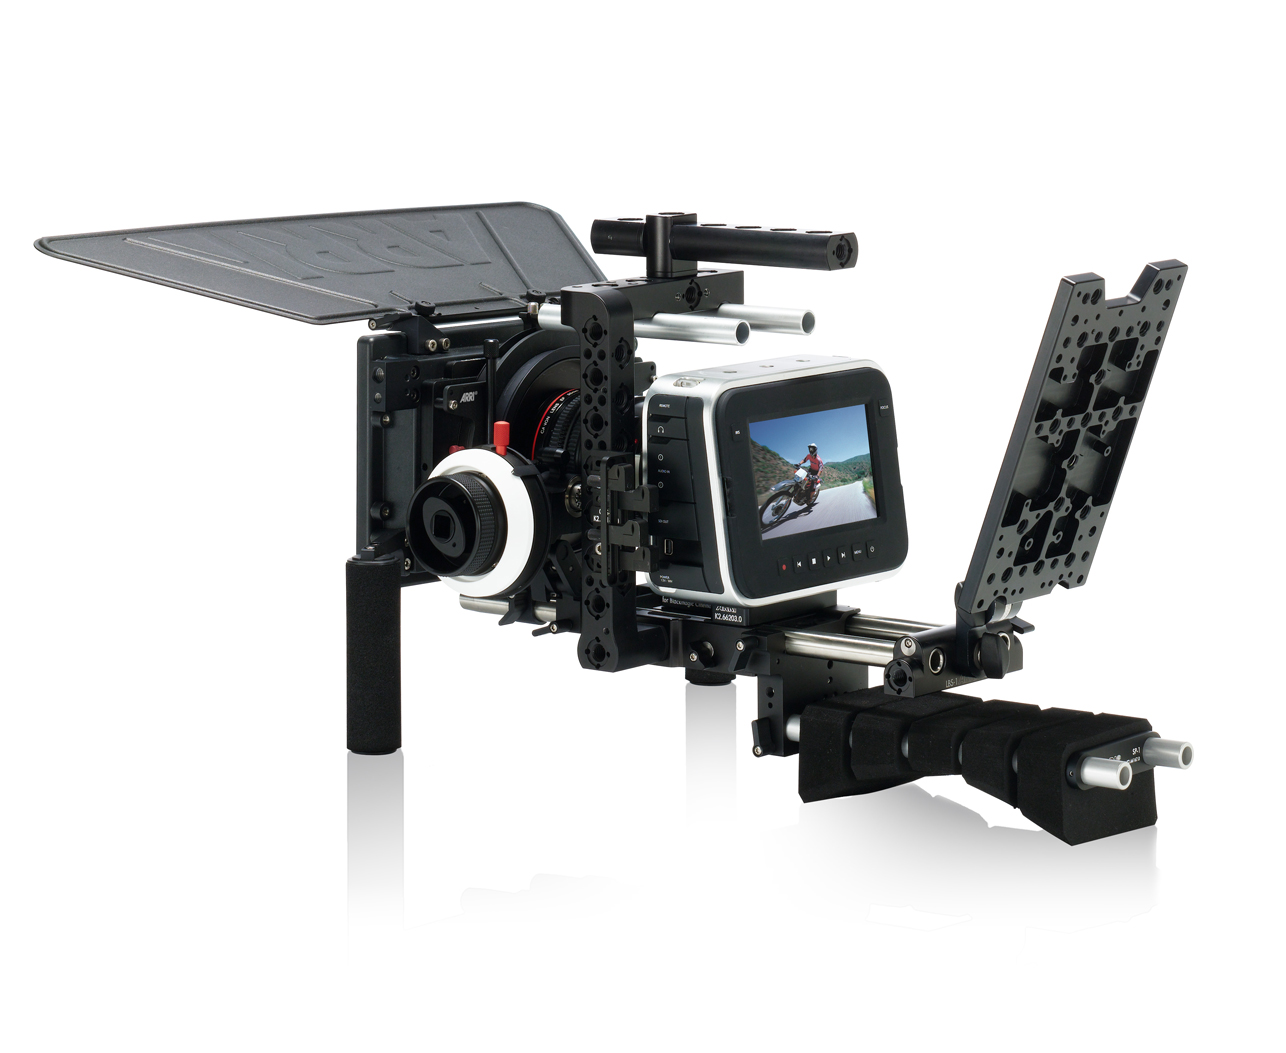 Blackmagic Design Cinema Camera, with ARRI Pro camera accessories